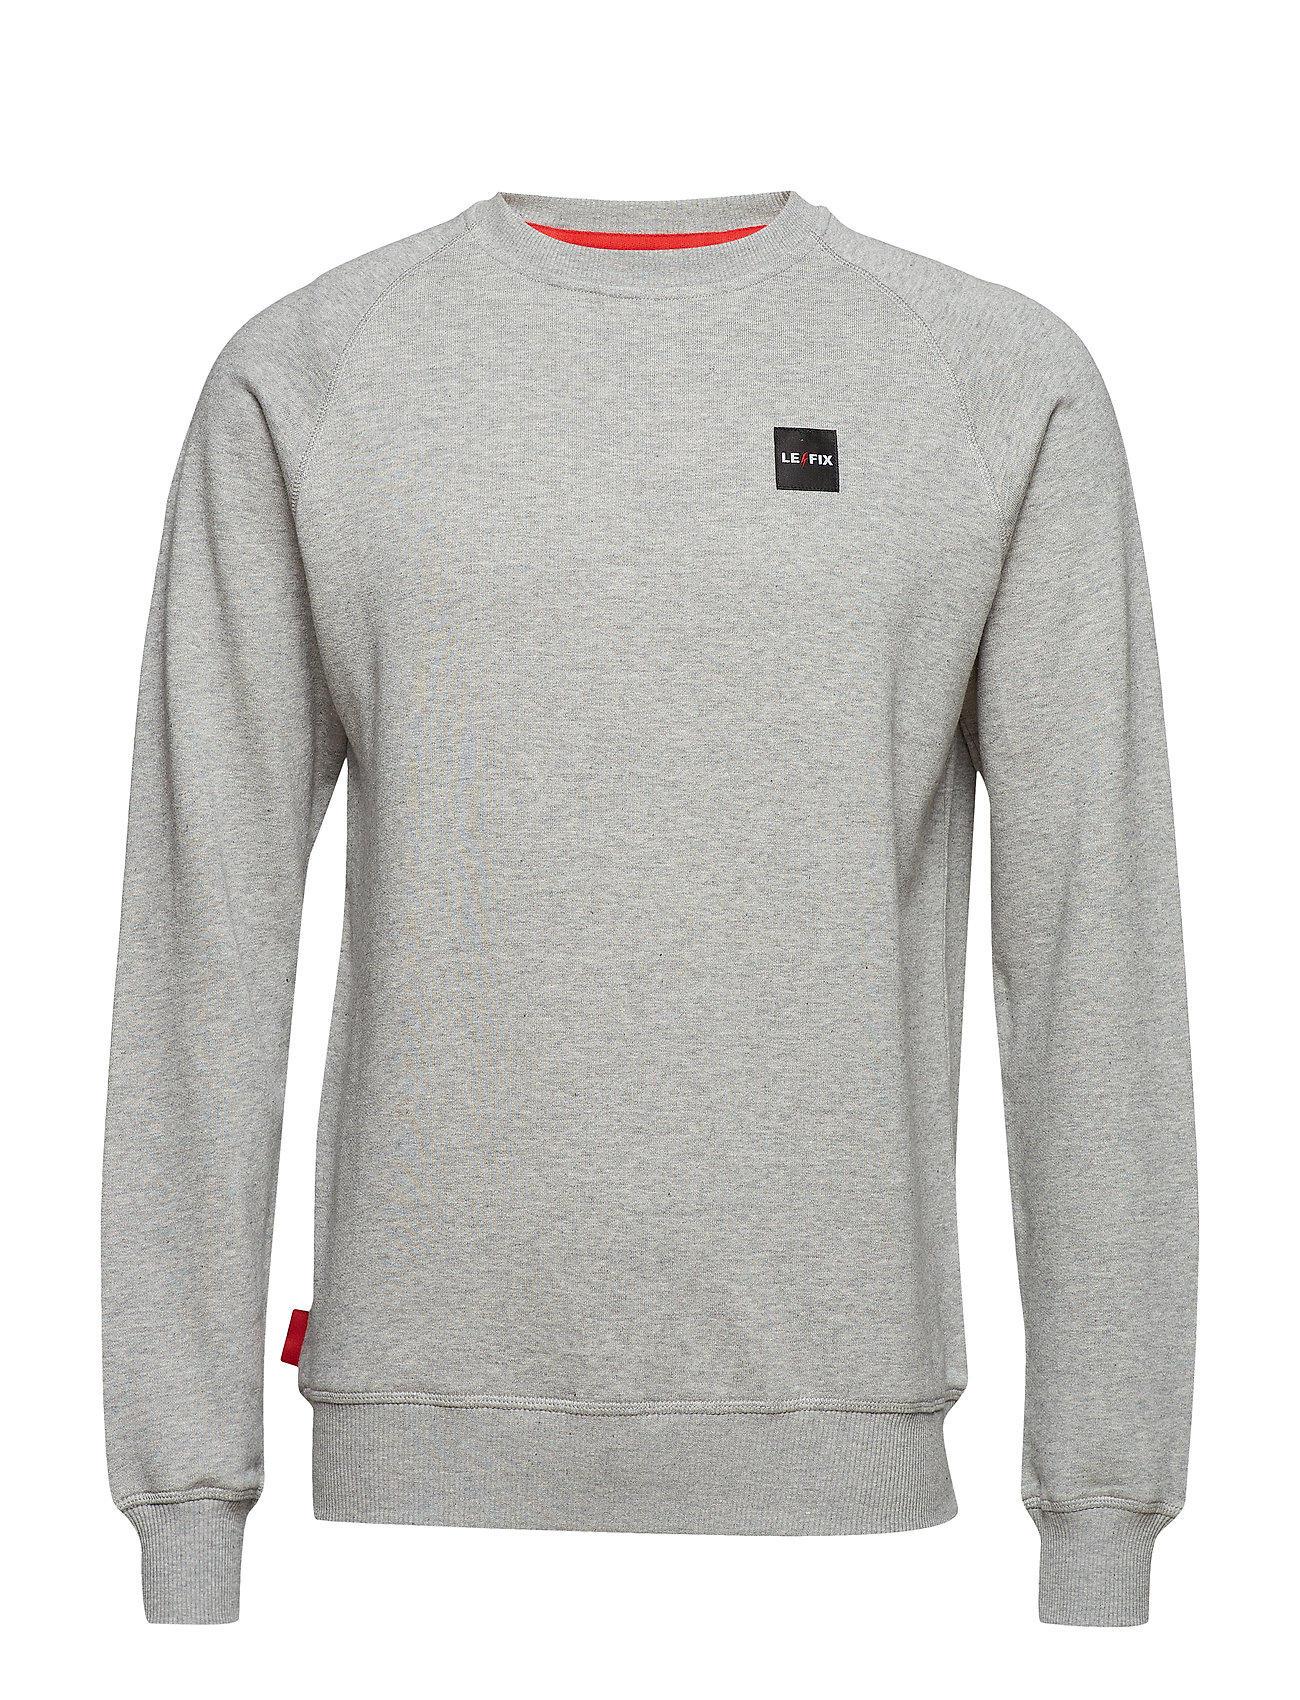 Le-Fix LF Patch Crew - GREY MEL.